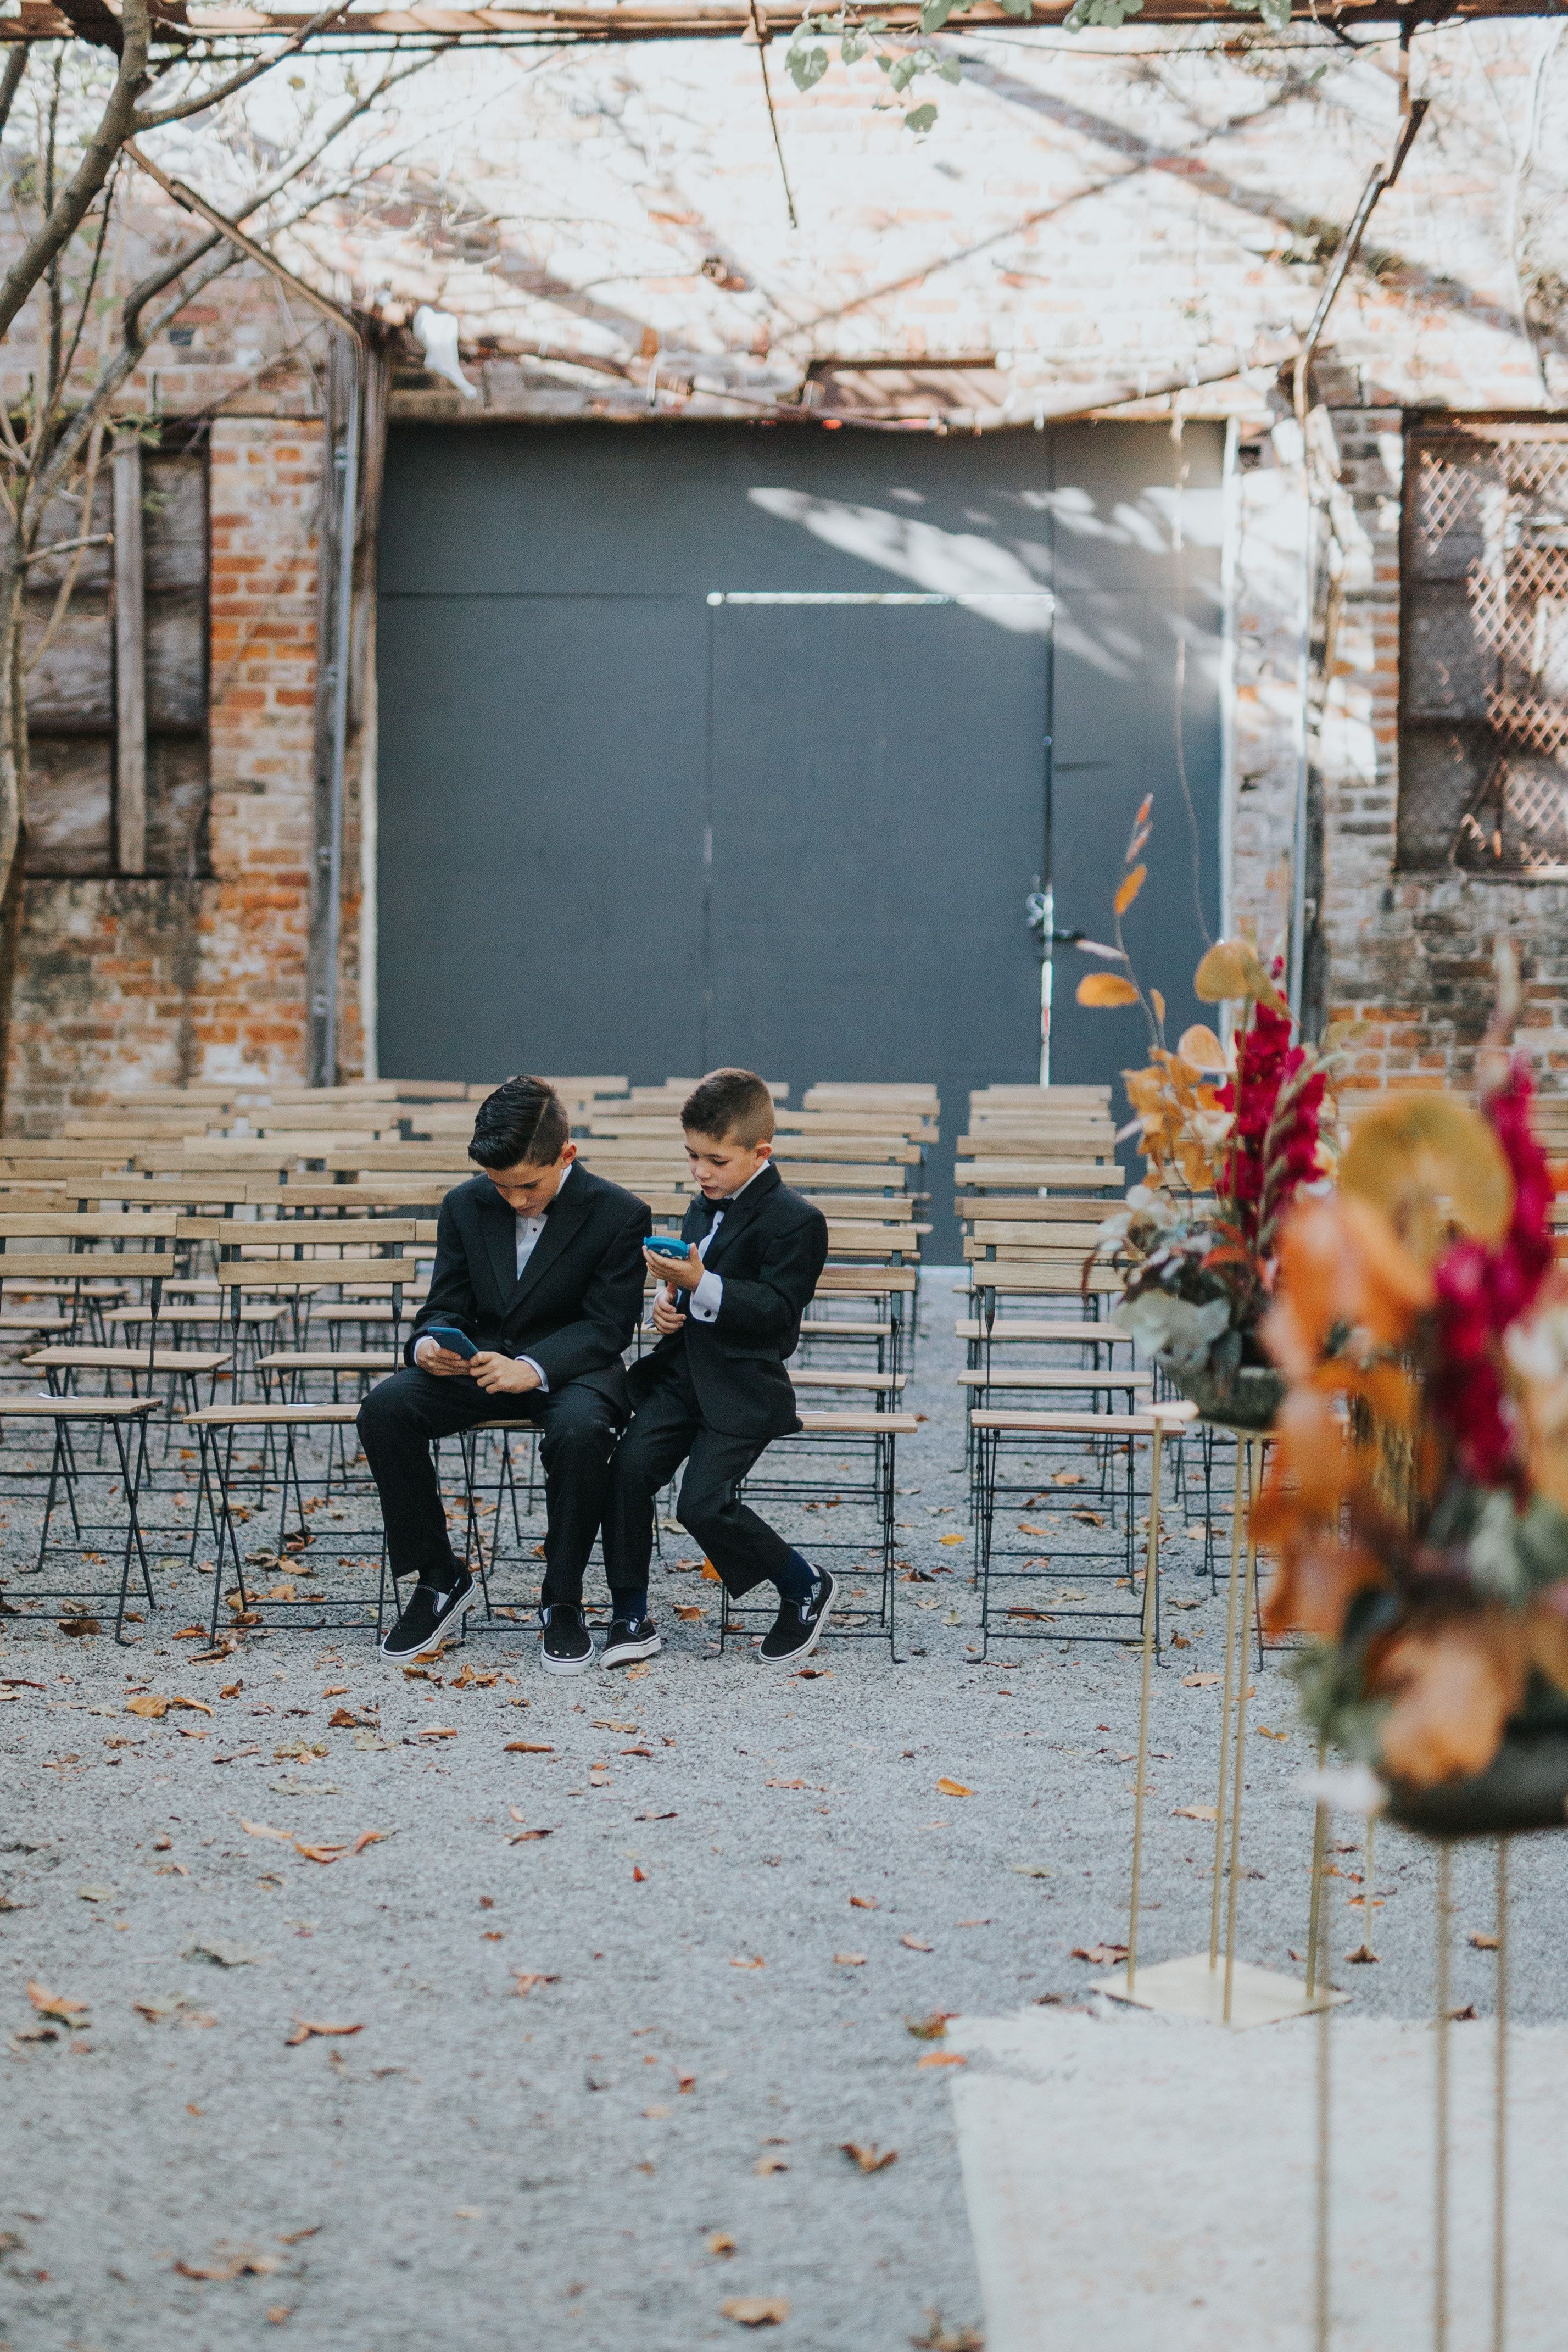 Arts Estuary Ceremony In New Orleans W Lovegood Wedding Event Rentals In 2020 Event Rental Wedding Events Ceremony